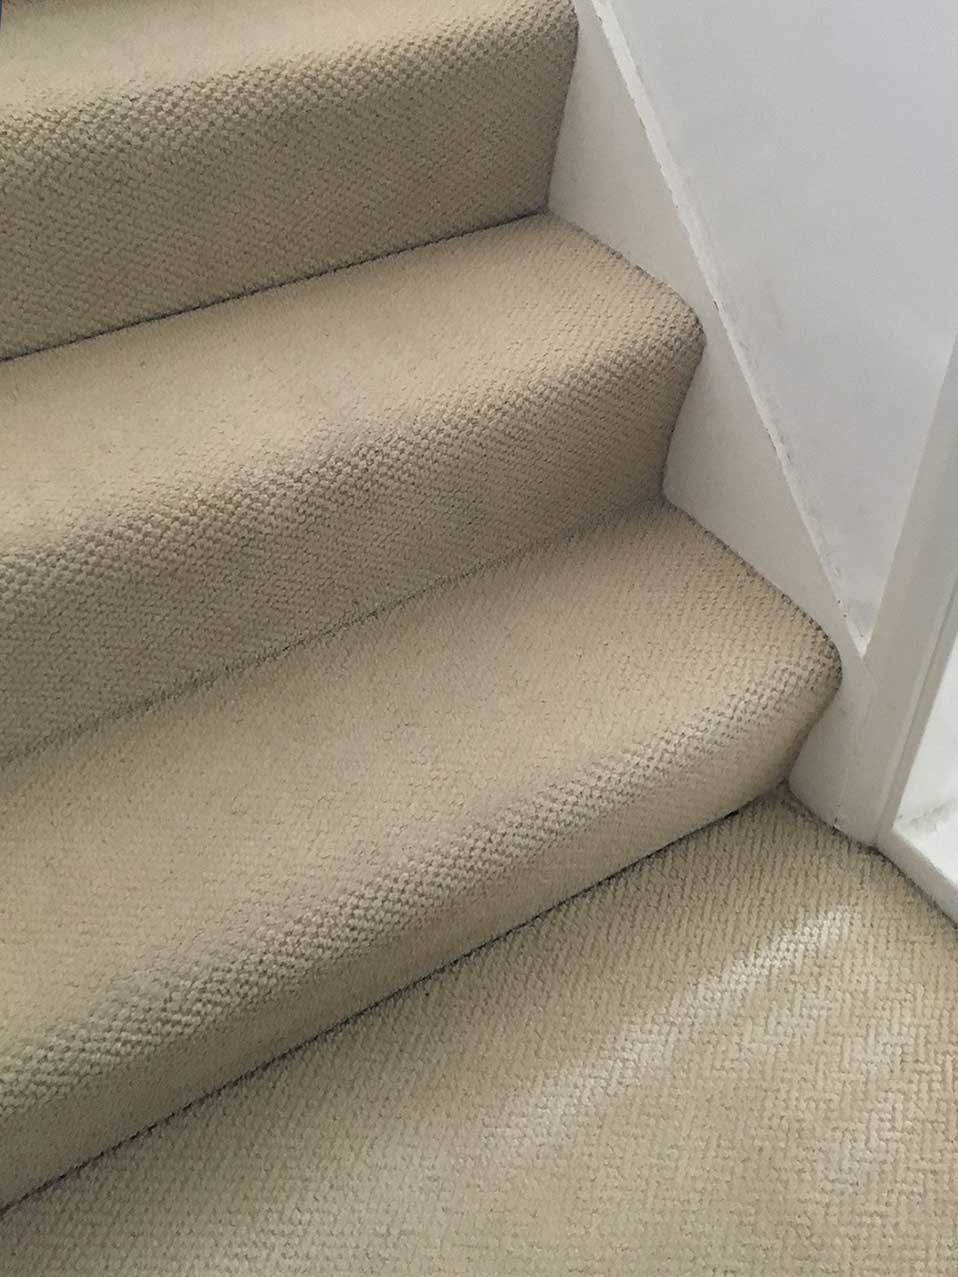 abbey-cleaning-stairs-carpet-cleaning-after